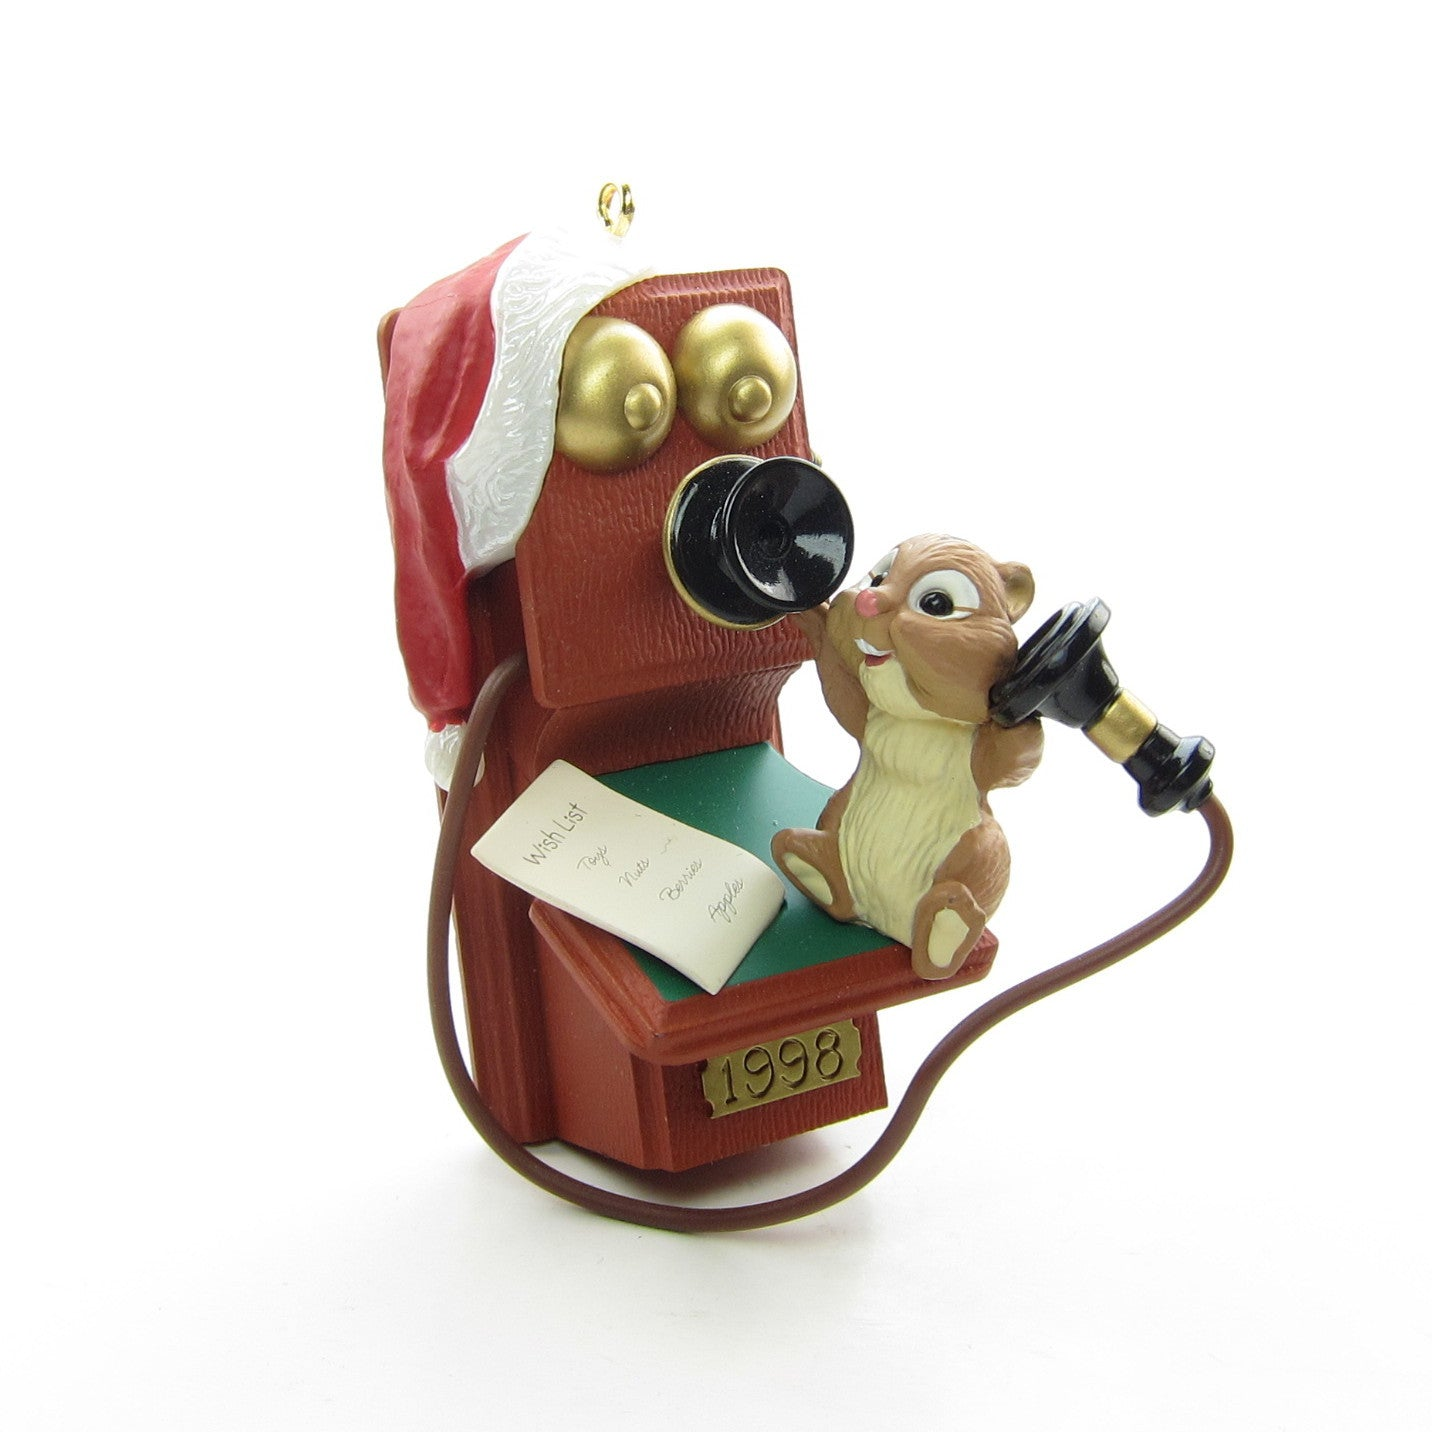 Hallmark Chatty Chipmunk Christmas ornament